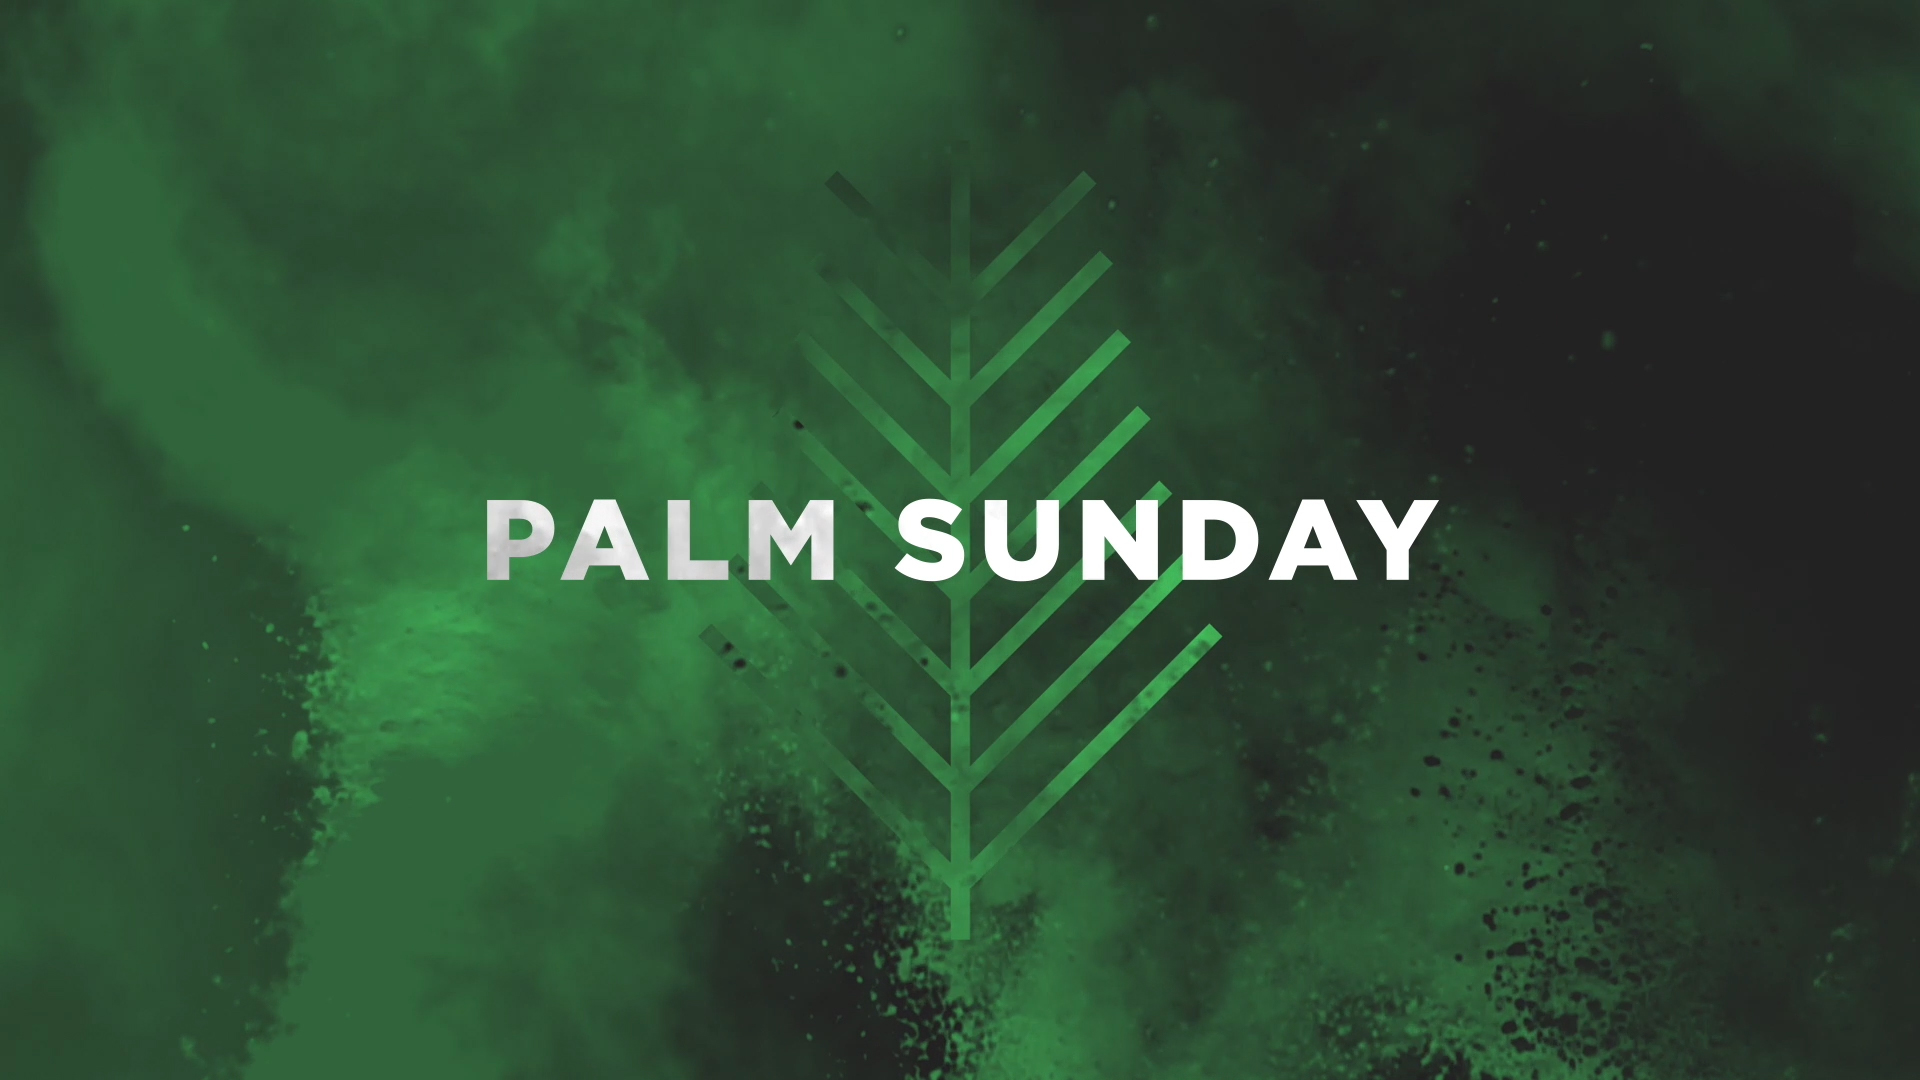 04-14-19 | Palm Sunday | The Two Spheres of the Cross | Mark Anderson